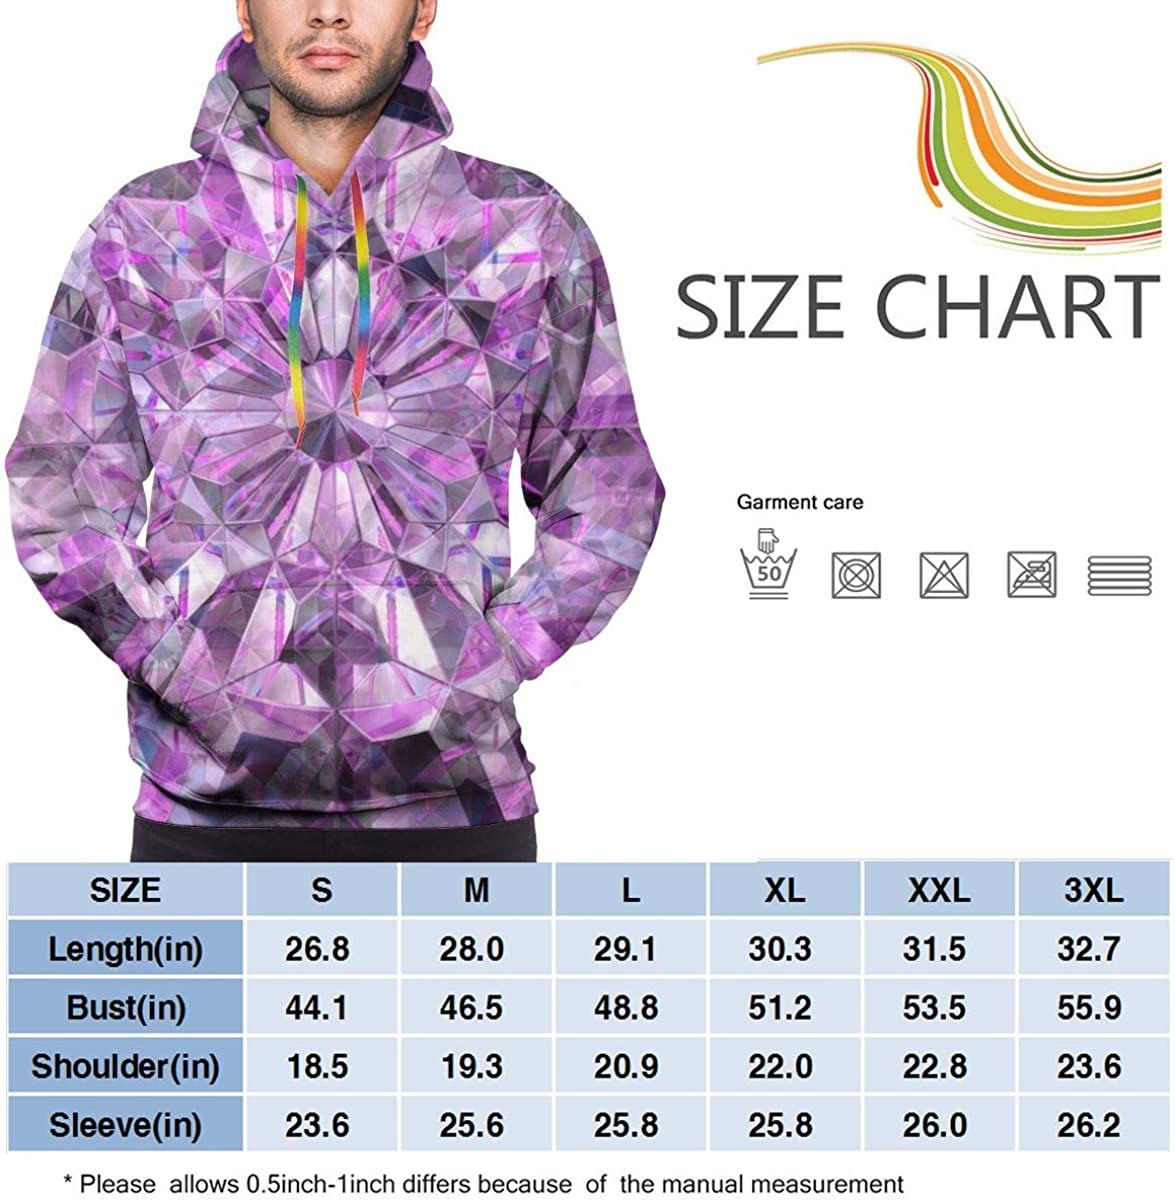 Crystal Texture Purple Mens Casual Drawstring Hoodies Pullover Hooded Shirts Warm Sweatshirt